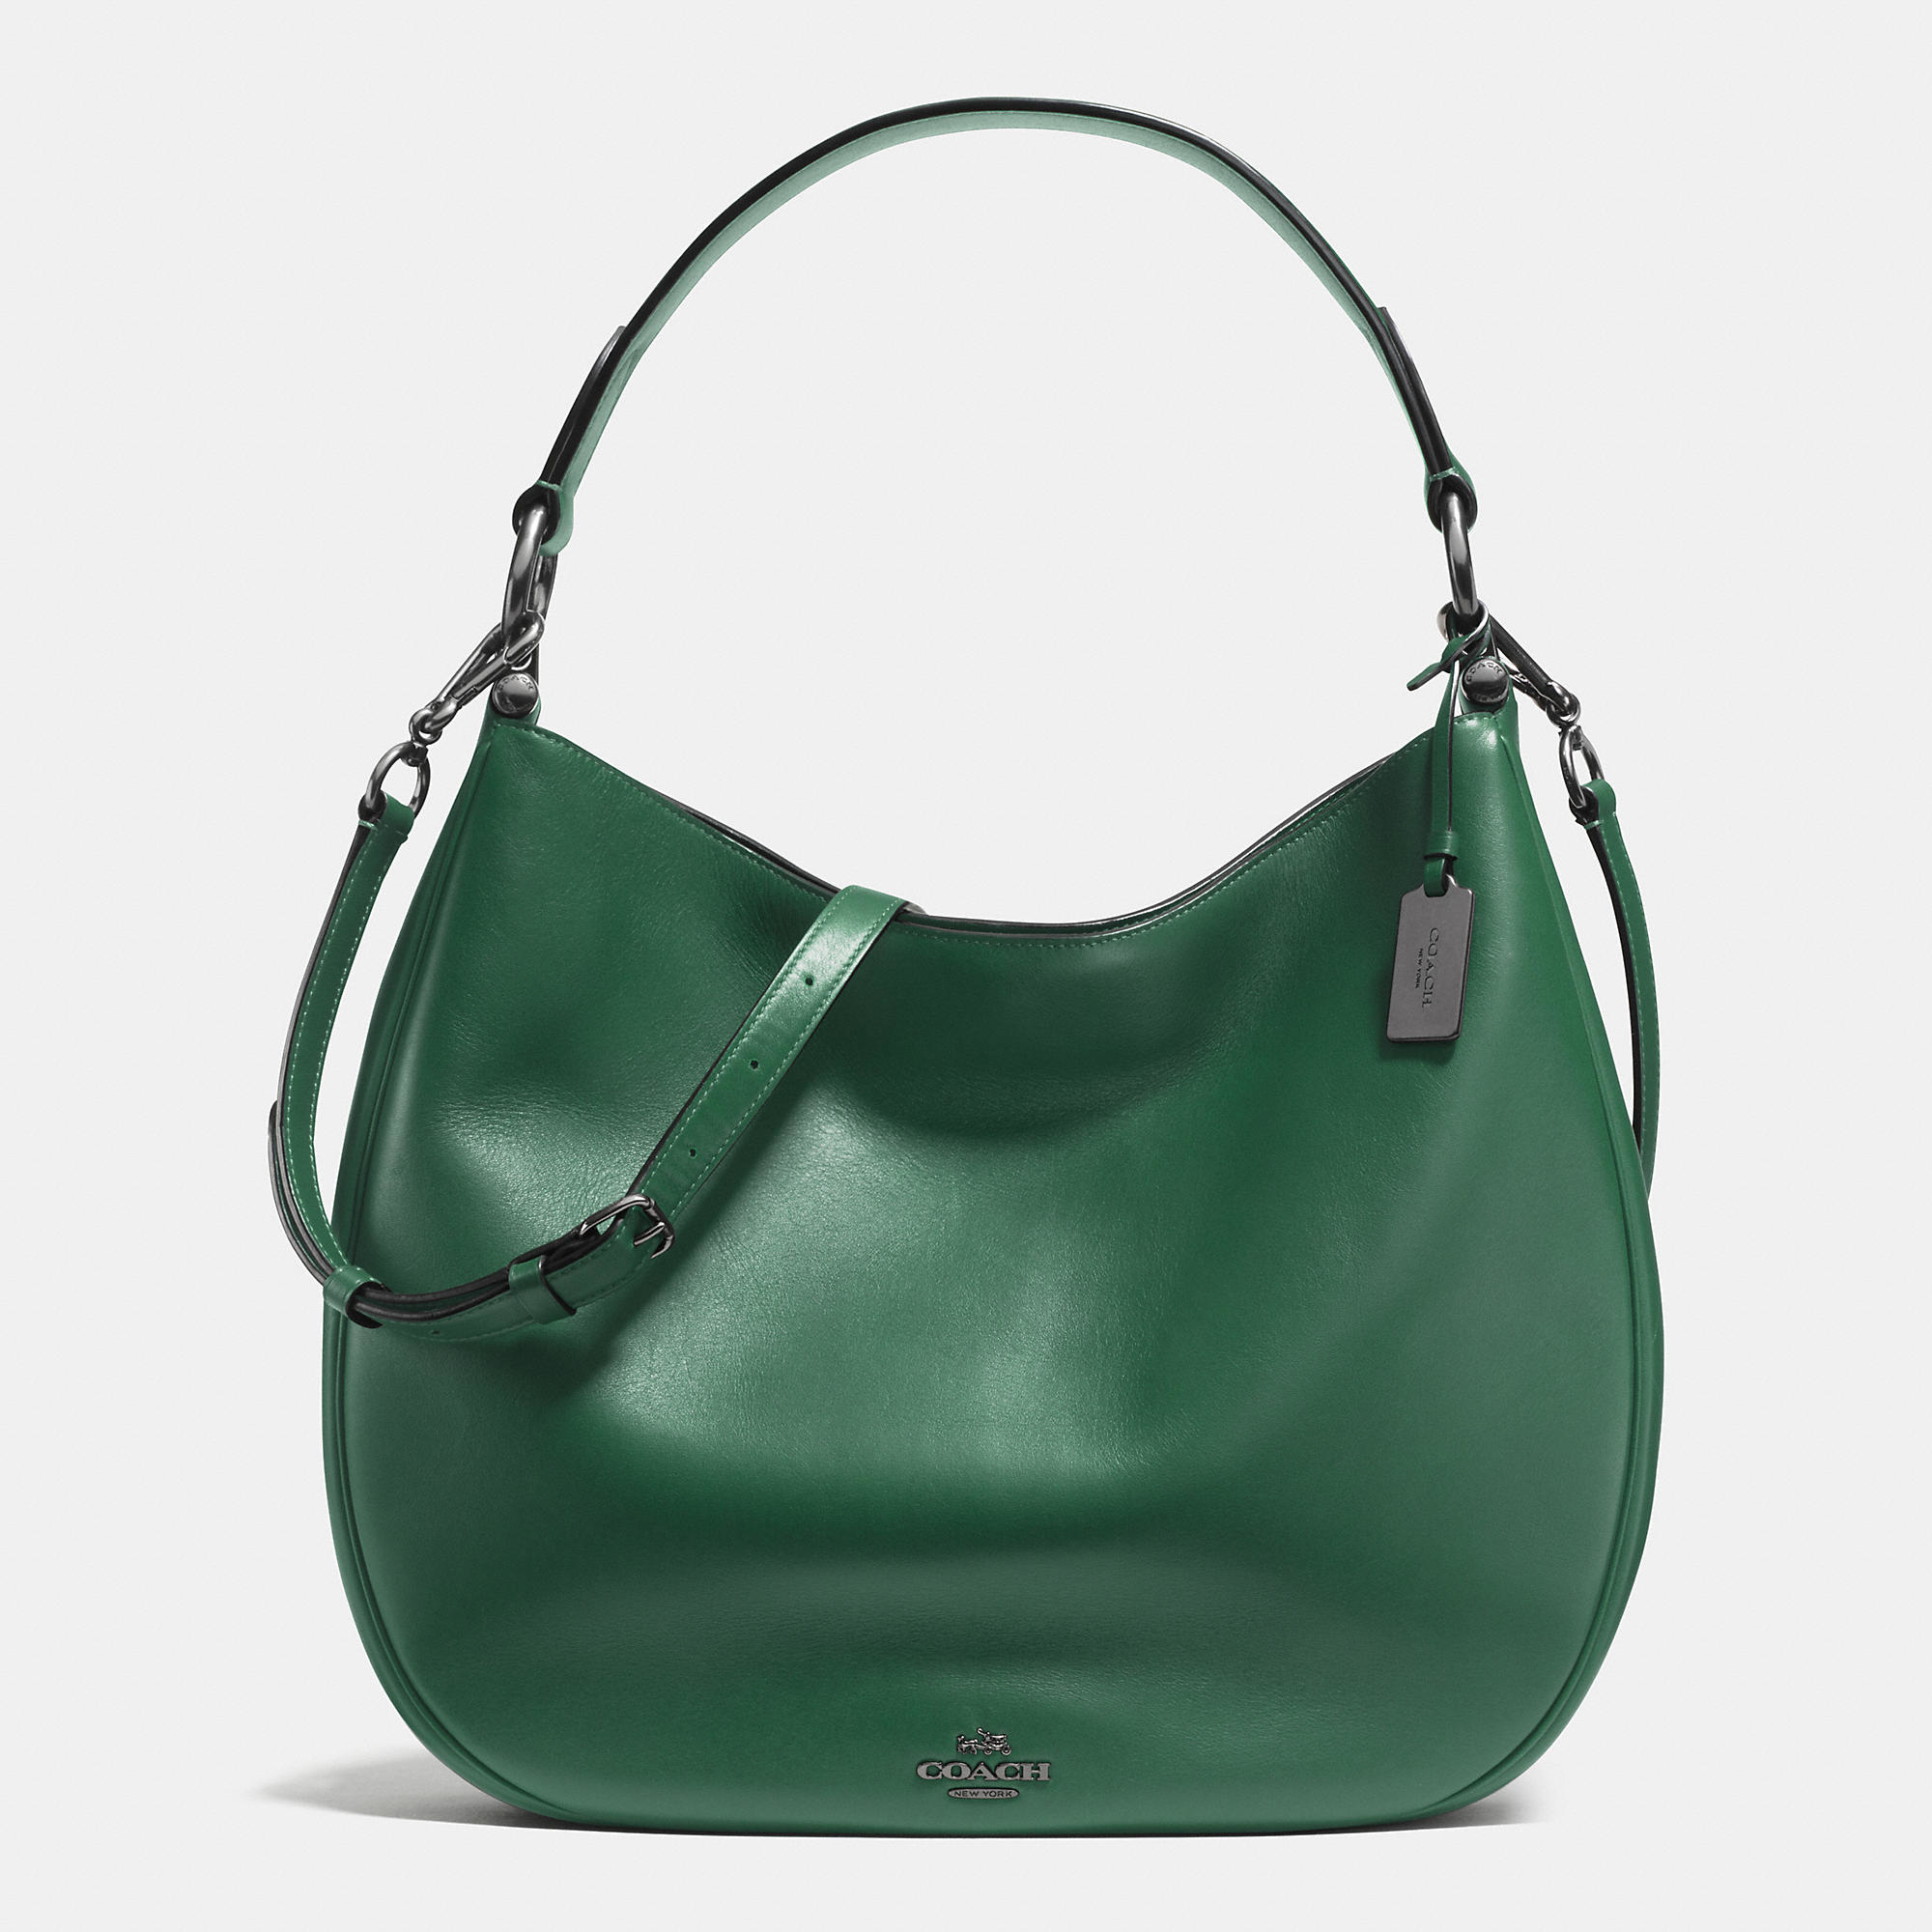 252cfed02 ... greece lyst coach nomad hobo in glovetanned leather in green 698ab 9941a